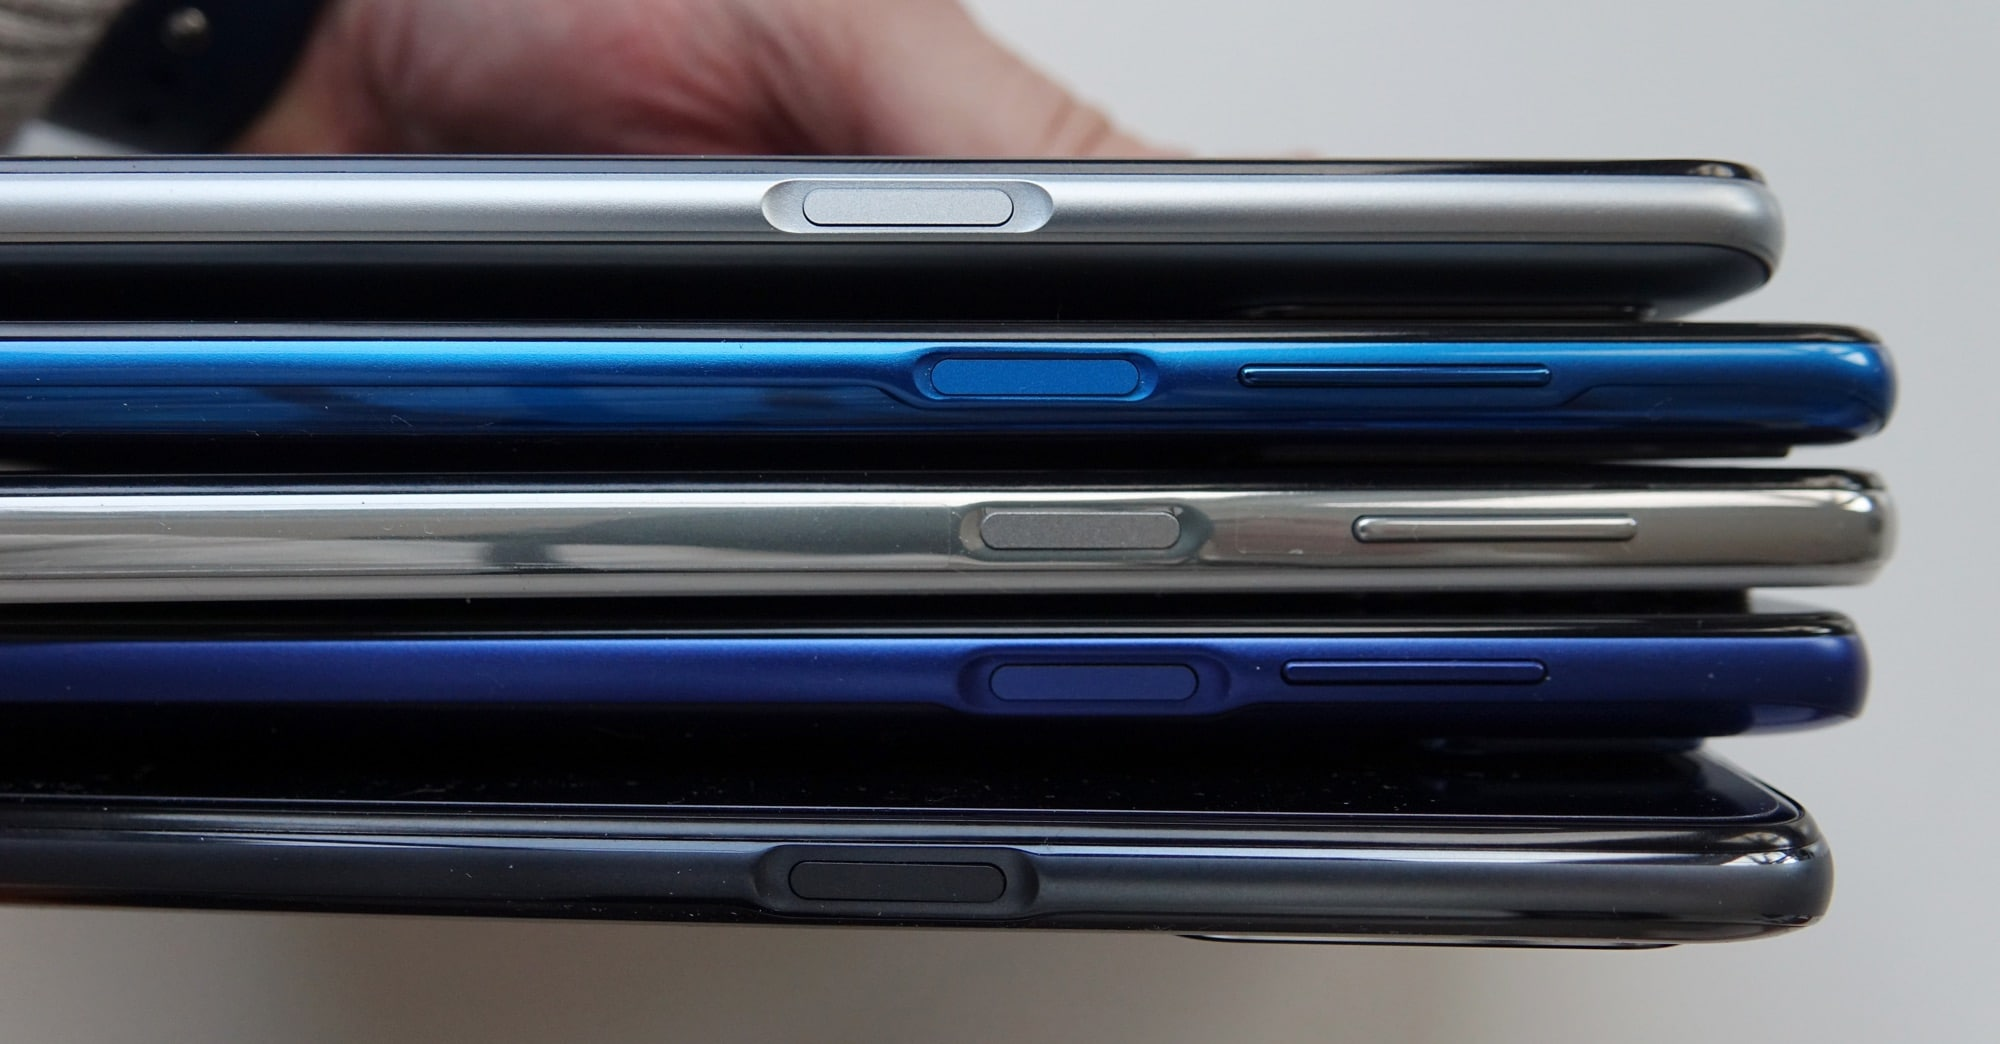 Every mid-range 5G phone in 2021 has a fingerprint sensor built into the power button. Every. Single. One.